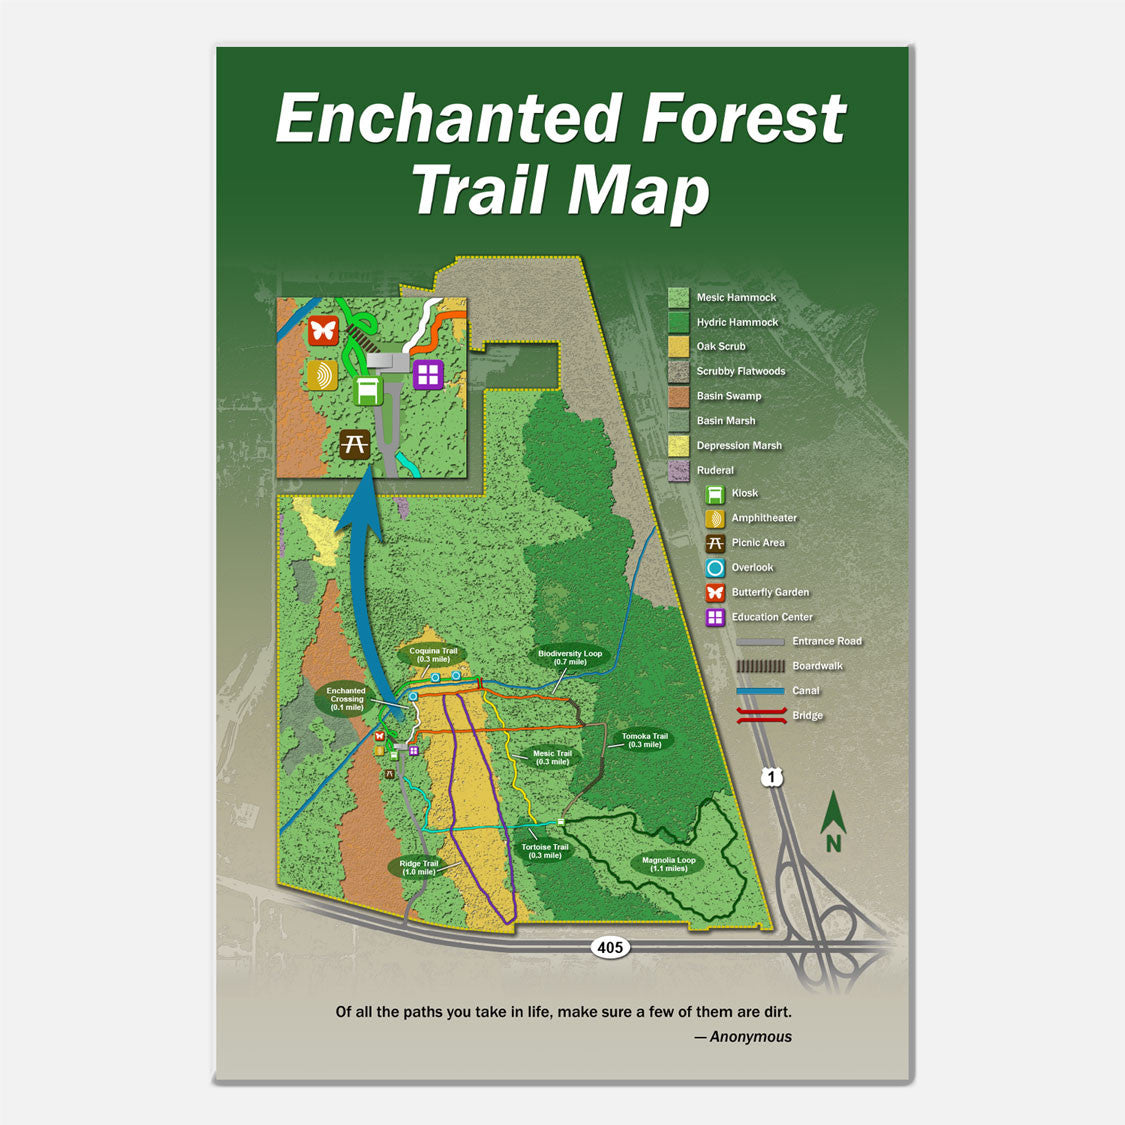 This trailhead sign outlines the trails of the Enchanted Forest Sanctuary in Brevard County, Florida.